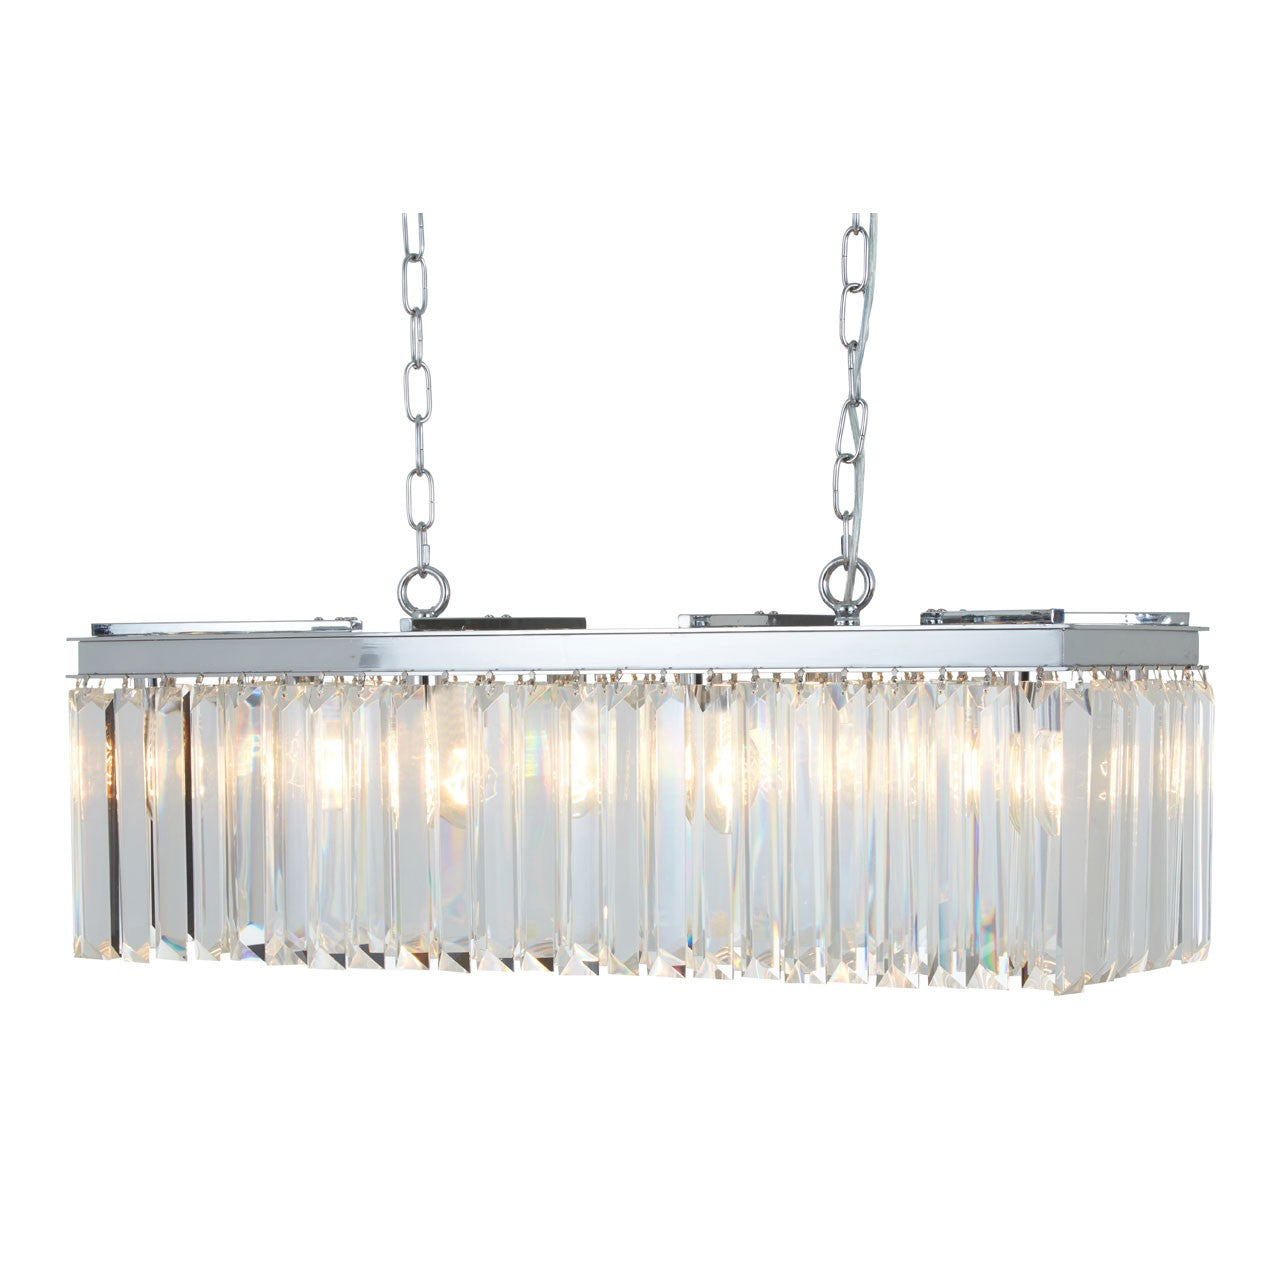 Kensington Townhouse Pendant Light